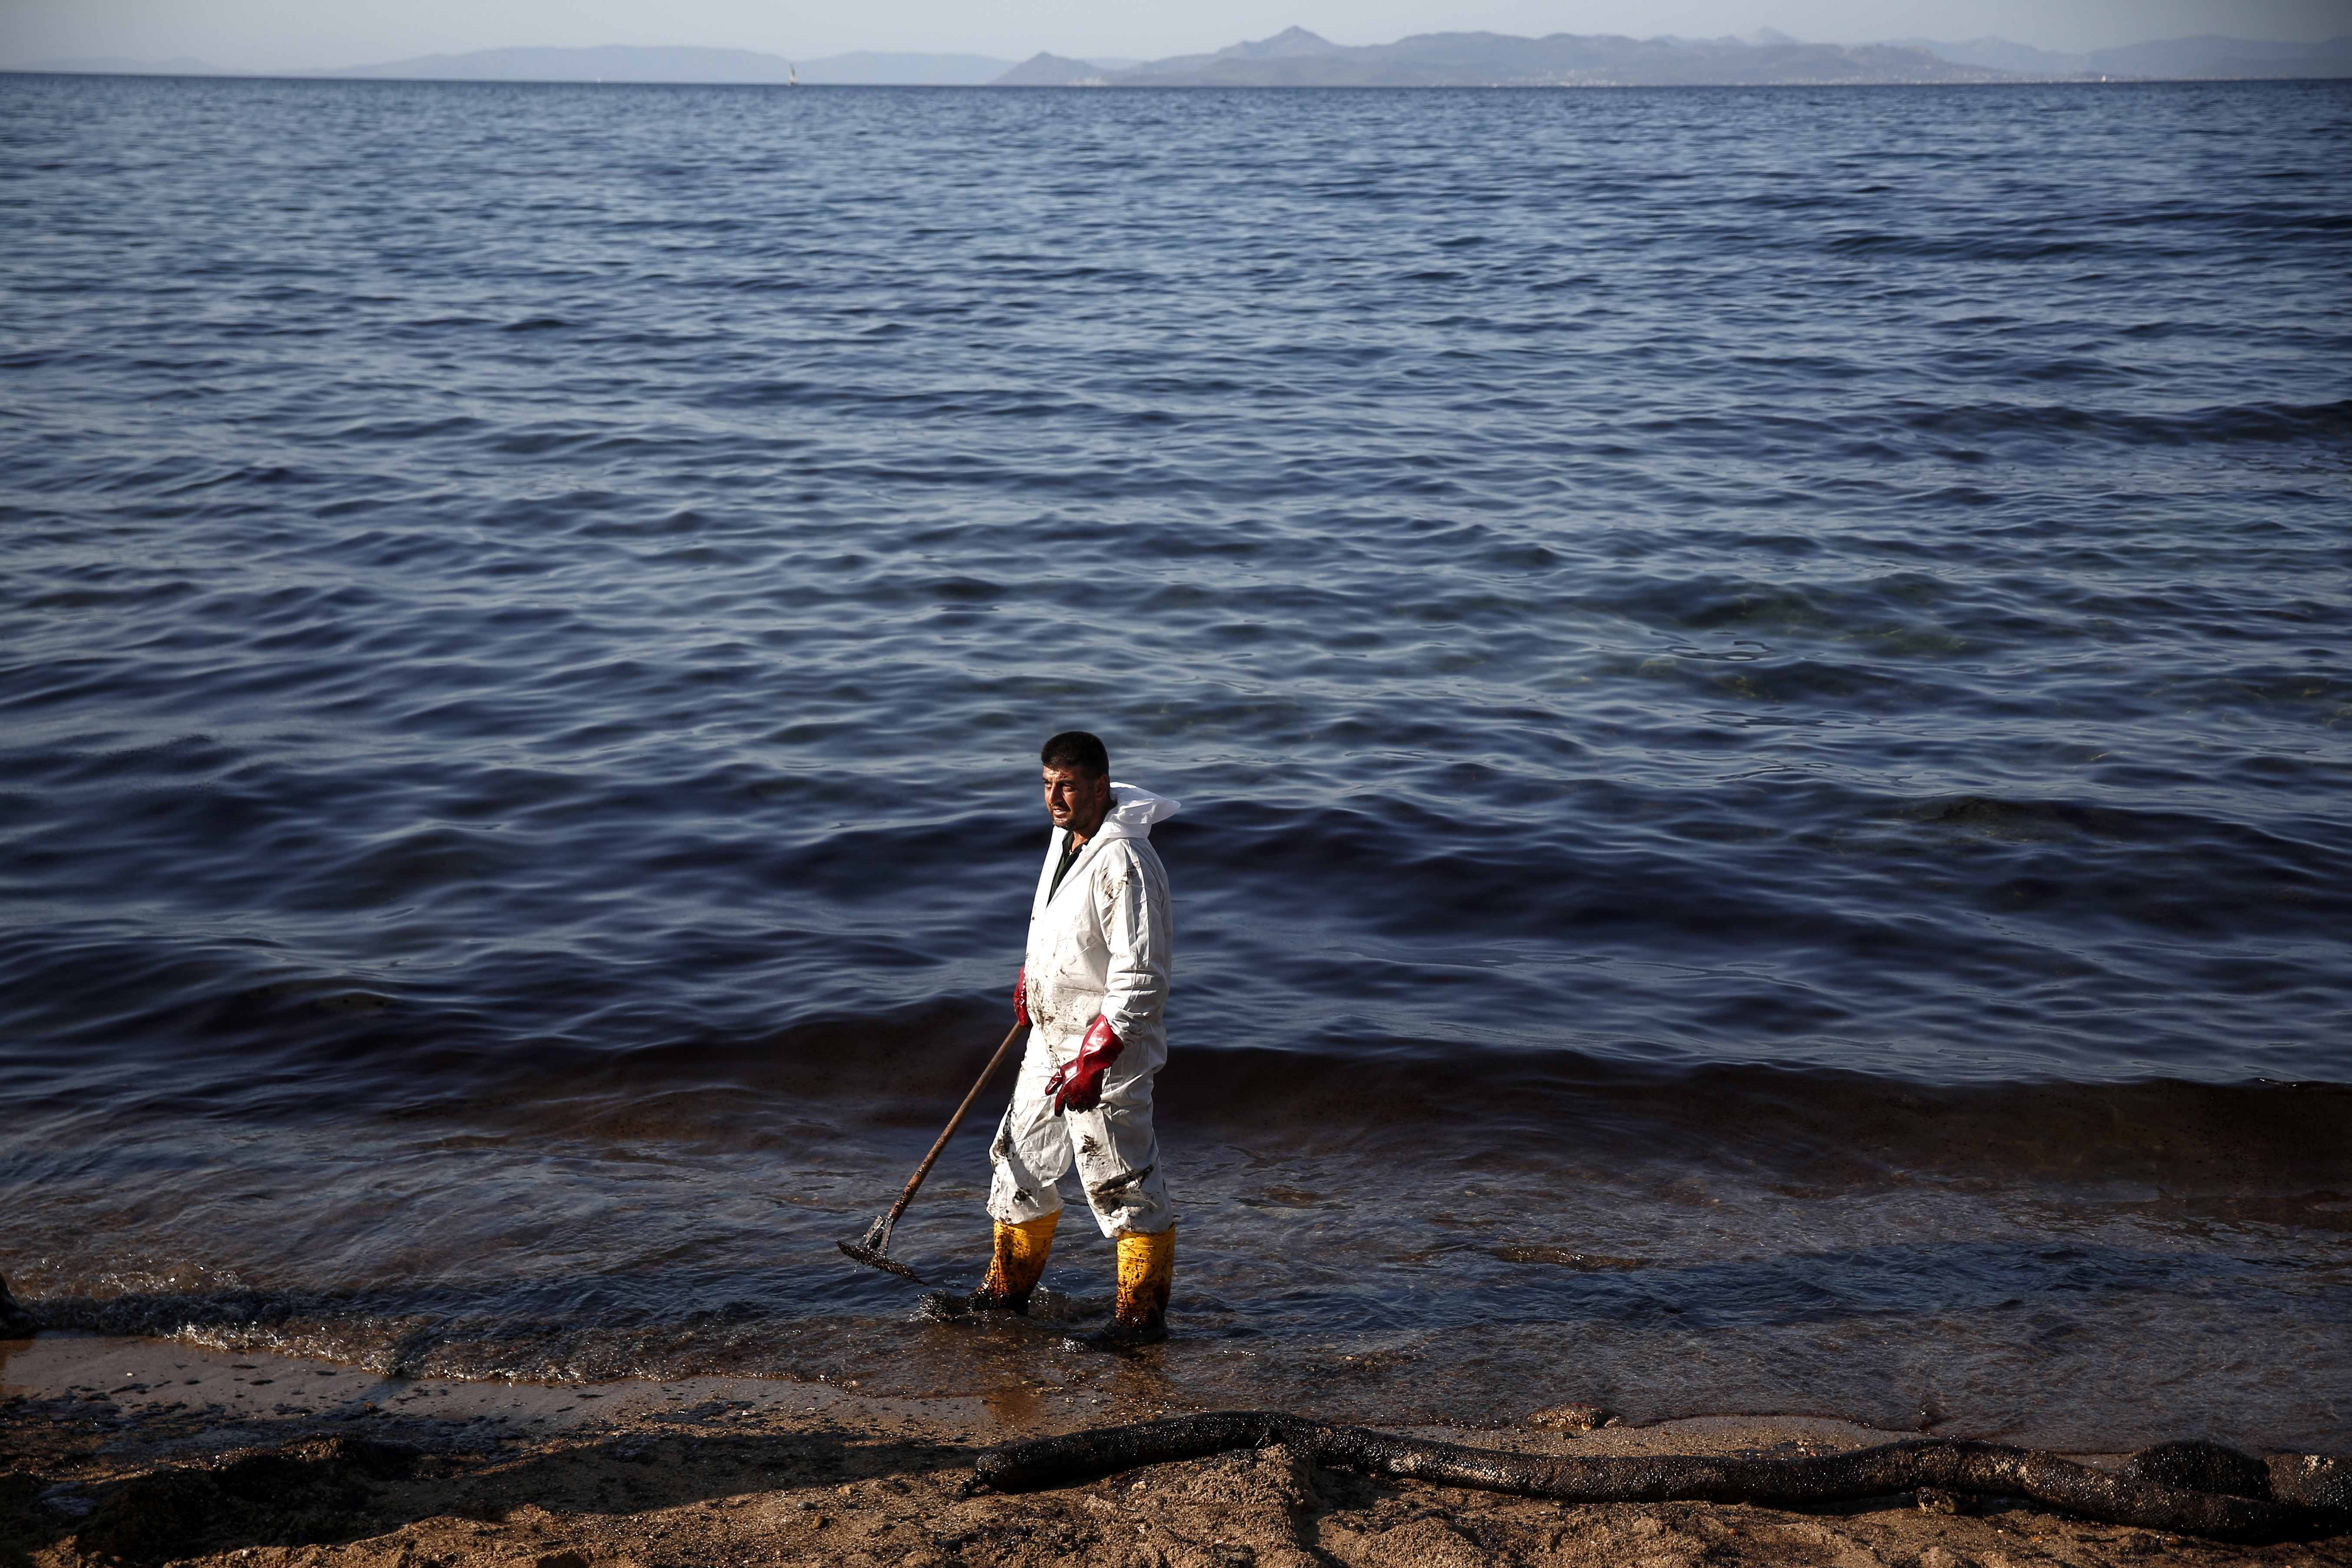 Greece Oli Spill-6 A worker cleans a beach of an oil spillage at Faliro suburb, near Athens, on Thursday,Sept. 14, 2017. Greek authorities insist they are doing everything they can to clean up pollution caused by an oil spill following the sinking of a small oil tanker that has left large sections of the Greek capital's coastal areas coated in viscous, foul-smelling oil. (AP Photo/Yorgos Karahalis)